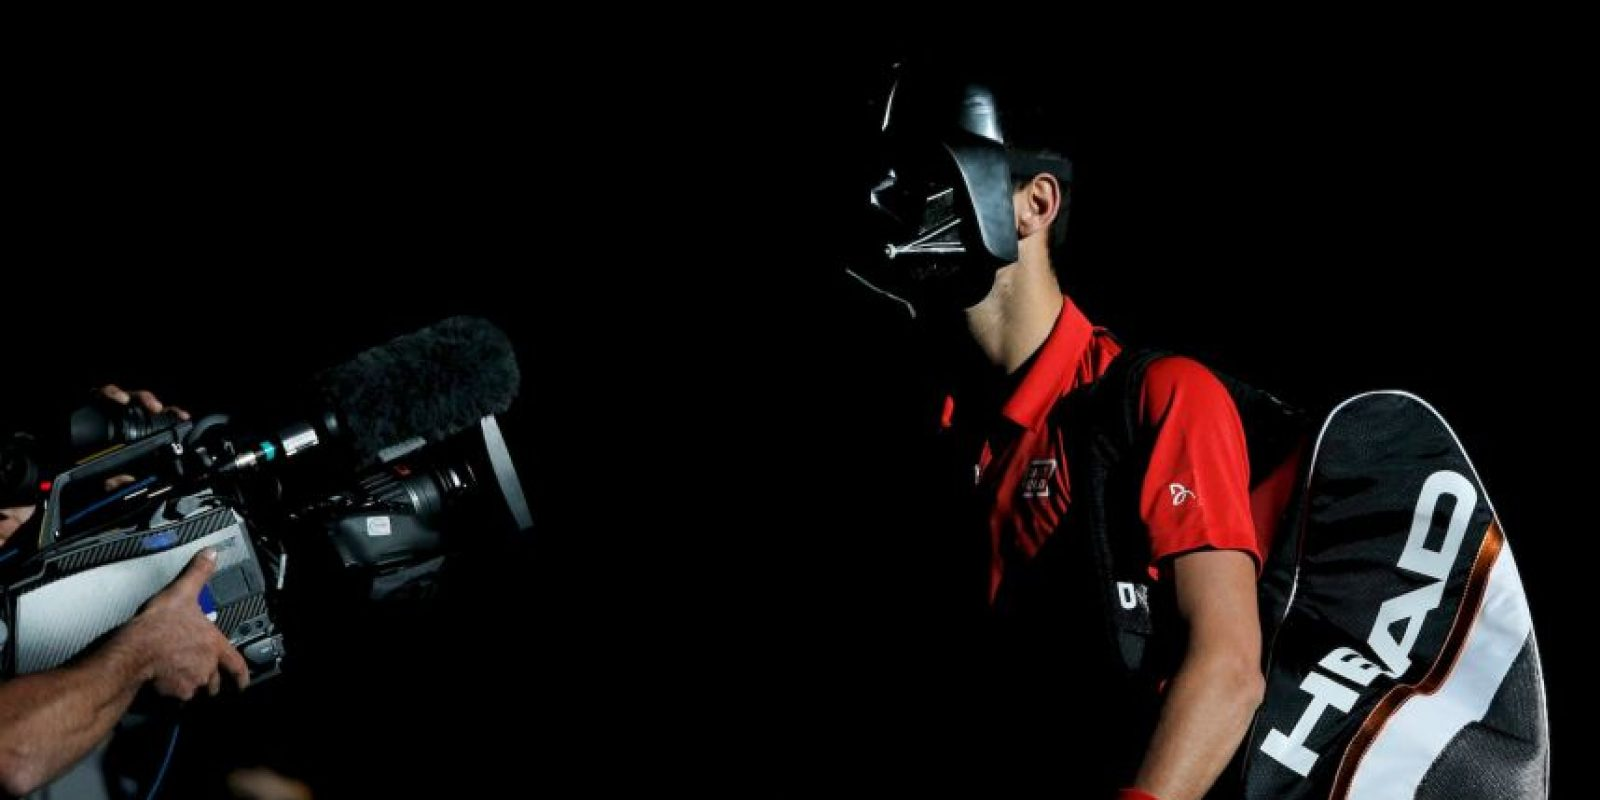 6. No es Halloween, pero pueden usar una máscara de Darth Vader como Novak Djokovic. Foto: Getty Images